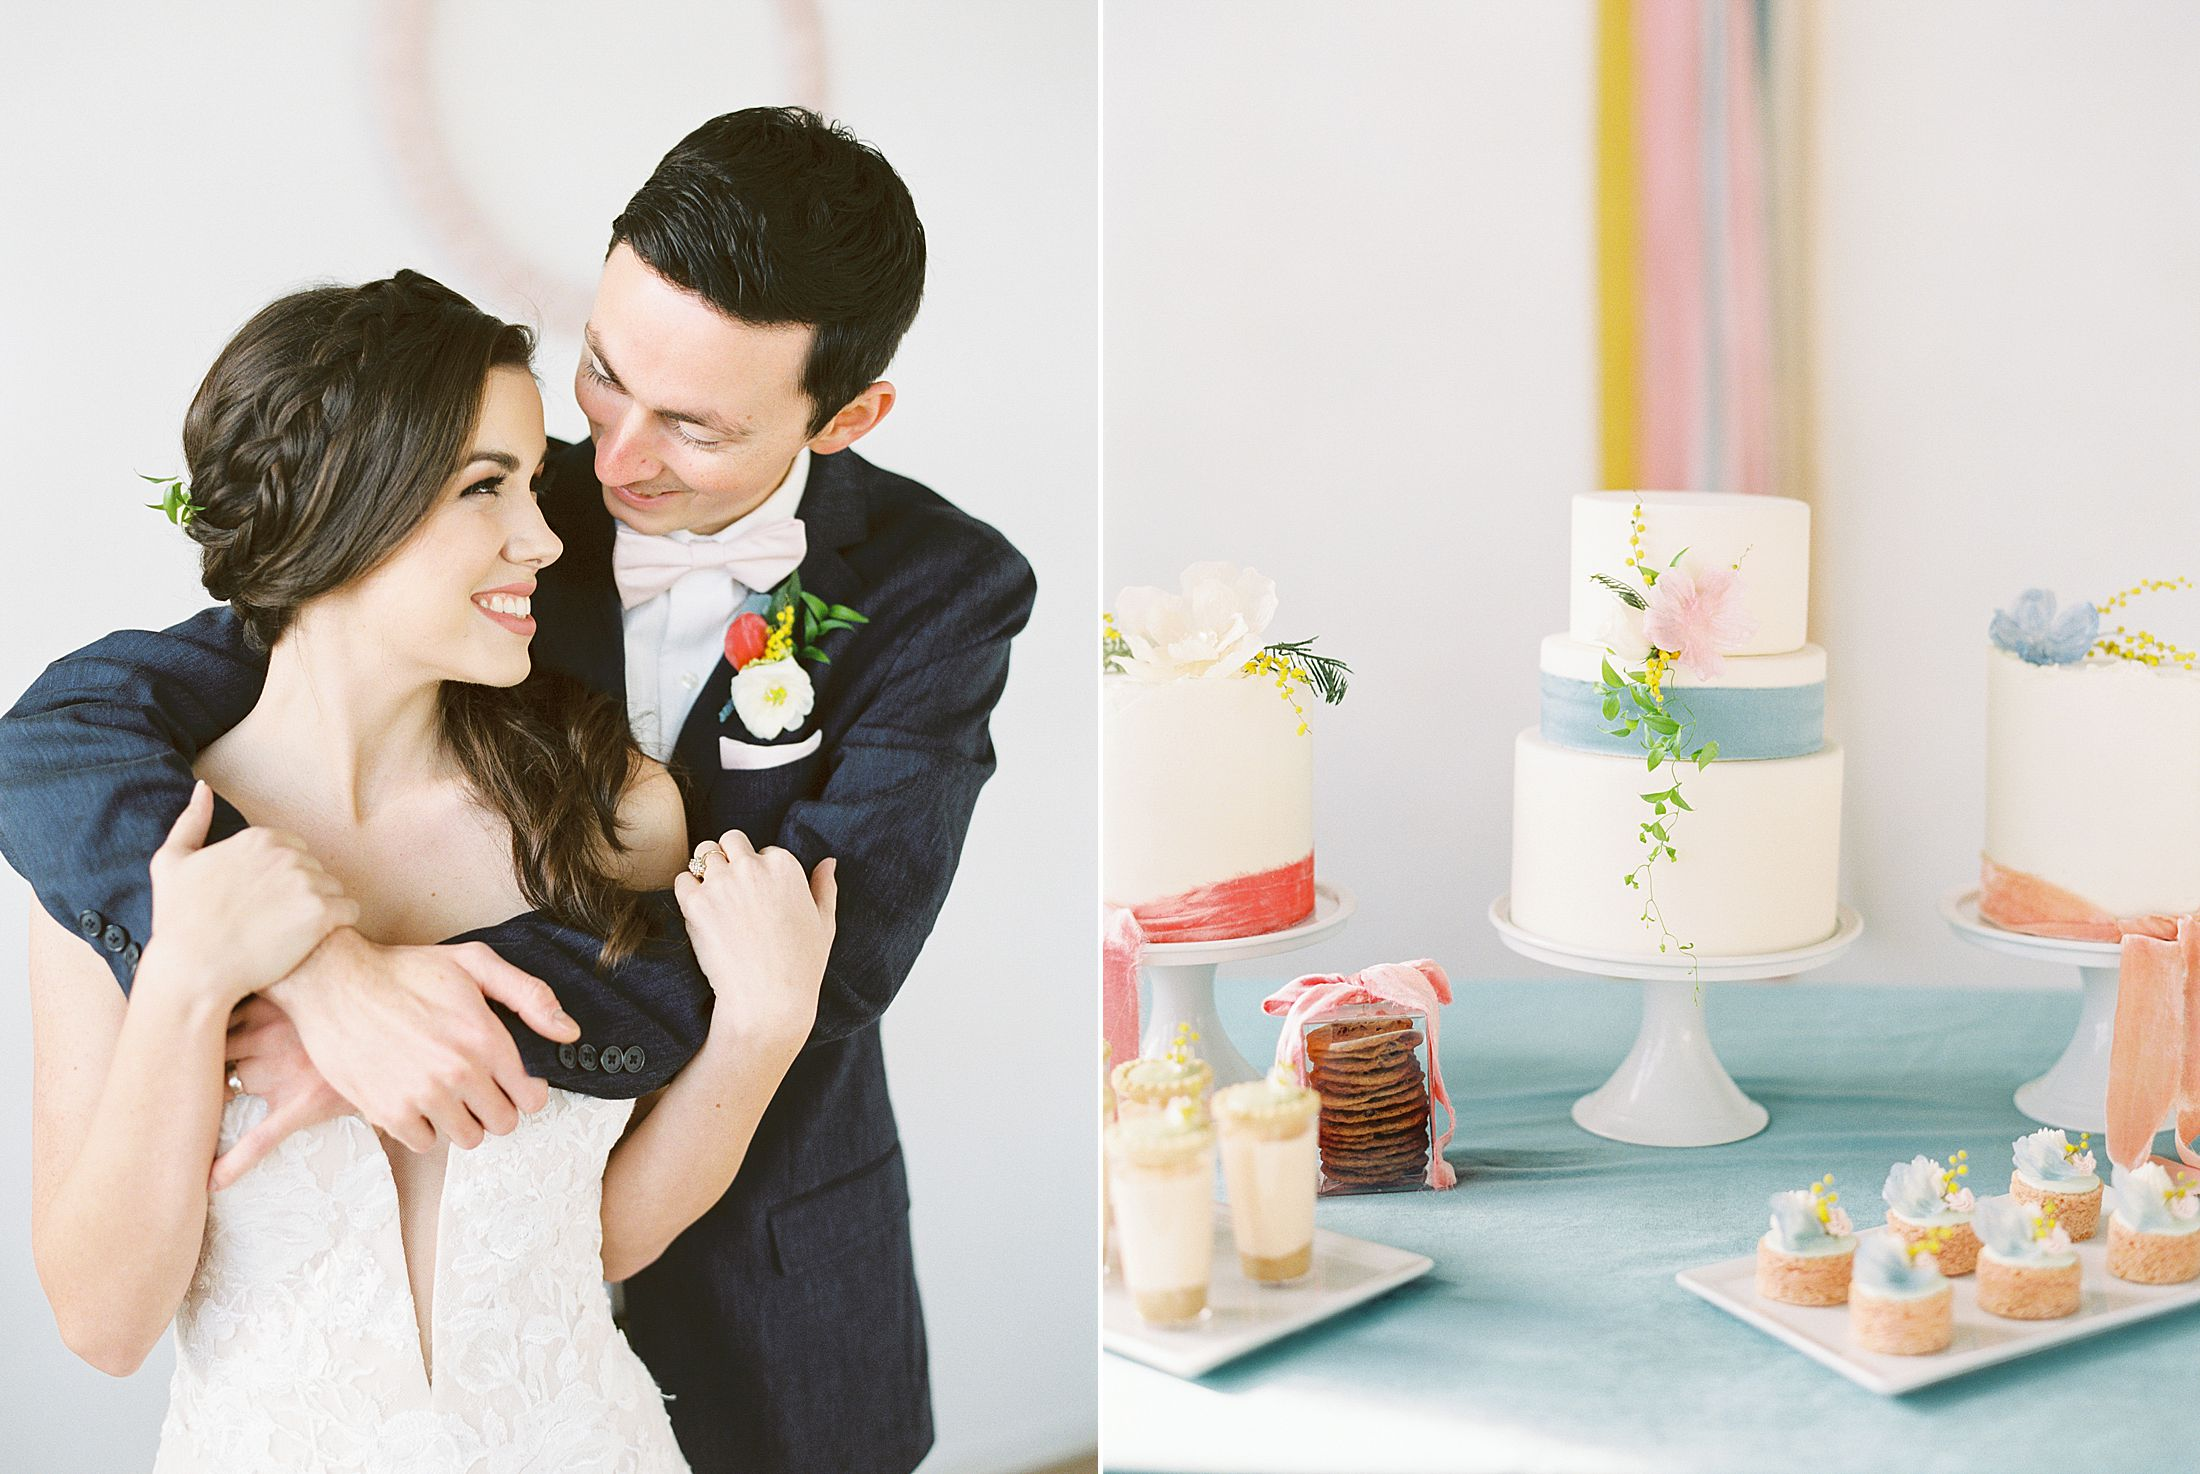 Bay Area Spring Wedding Inspiration - Ashley Baumgartner - Inspired By This - Party Crush Studio and Lens of Lenox Videography - Bay Area Wedding Photography_0045.jpg